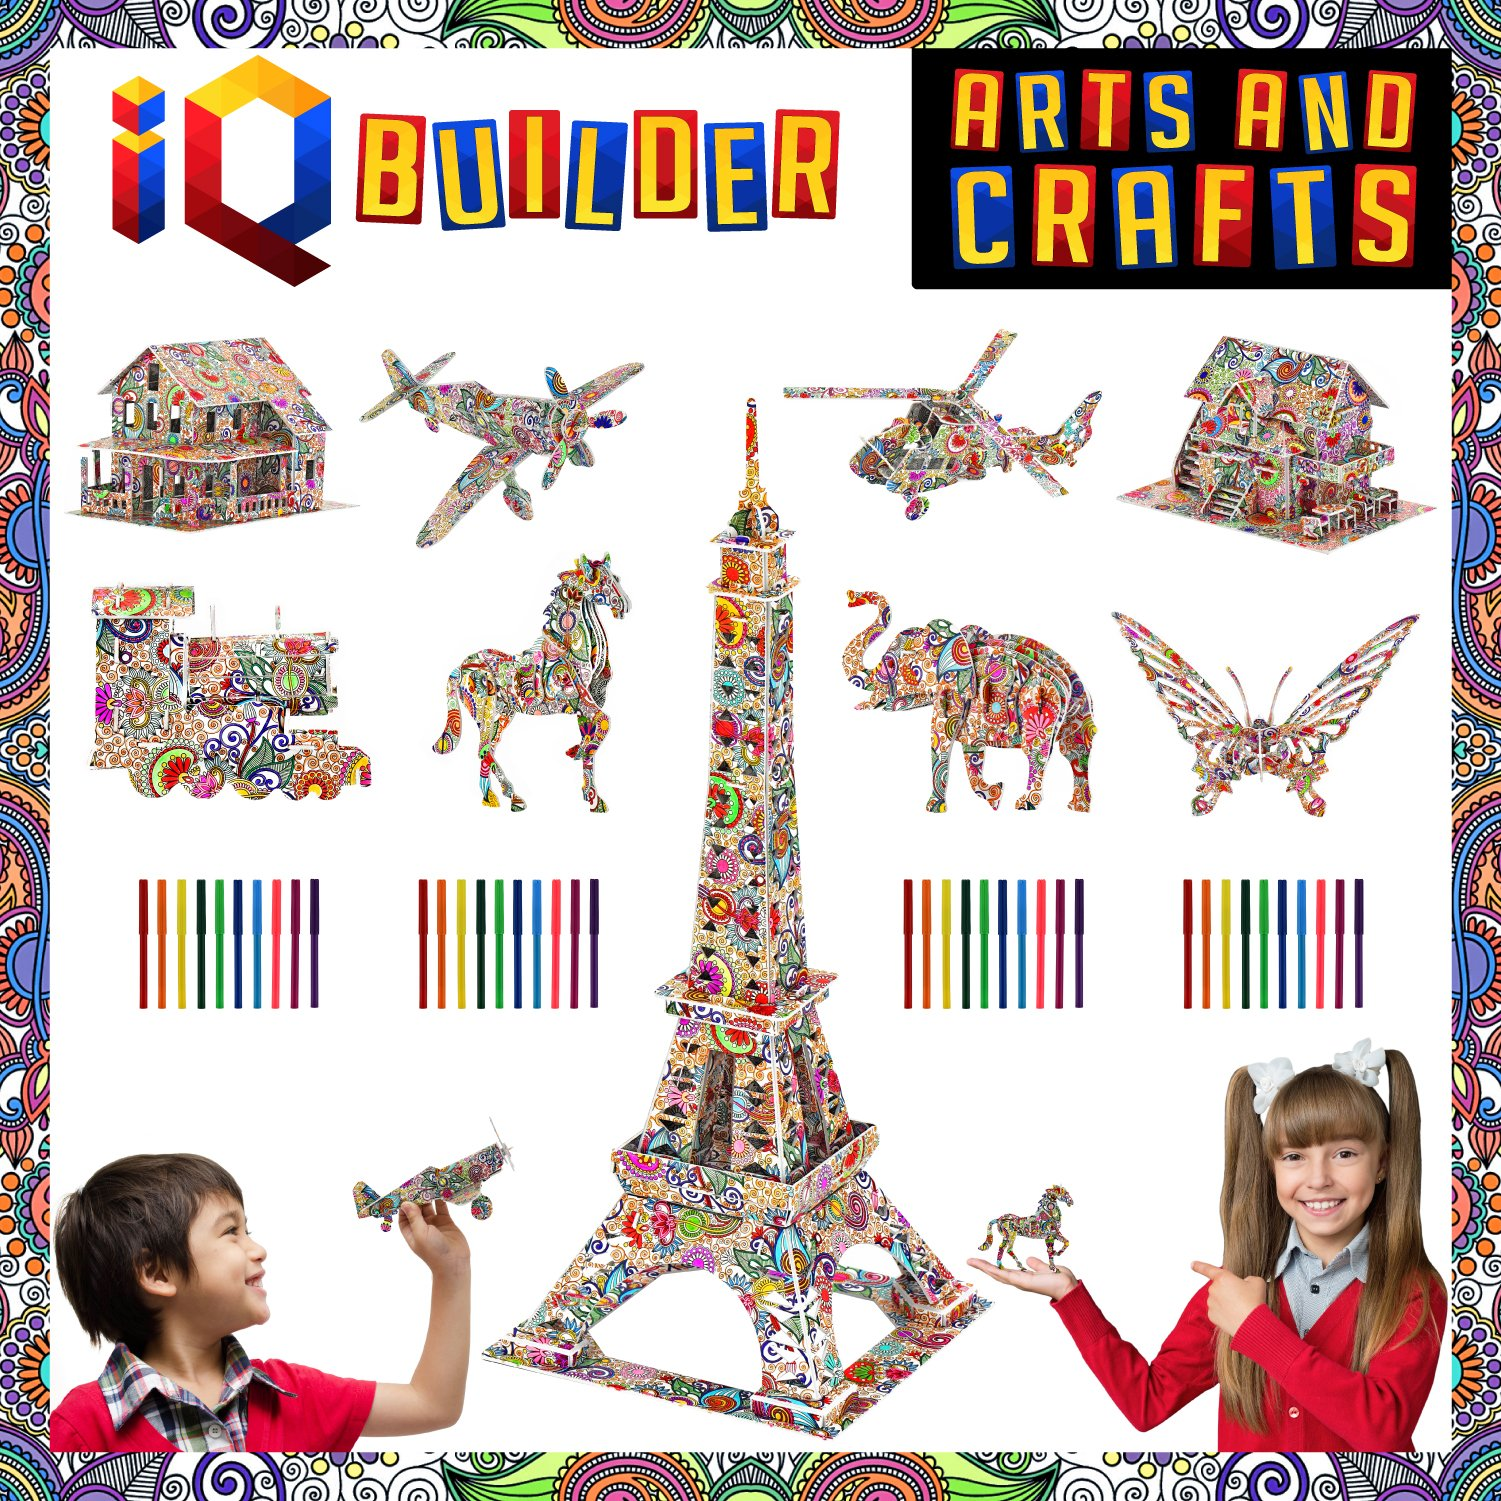 IQ BUILDER | Fun Creative DIY Arts and Crafts KIT | Best Toy Gift for Girls and Boys Age 8 9 10 11 12 Year Old | Educational Art Building Painting Coloring 3D Puzzle Project Set for Kids and Adults by IQ BUILDER